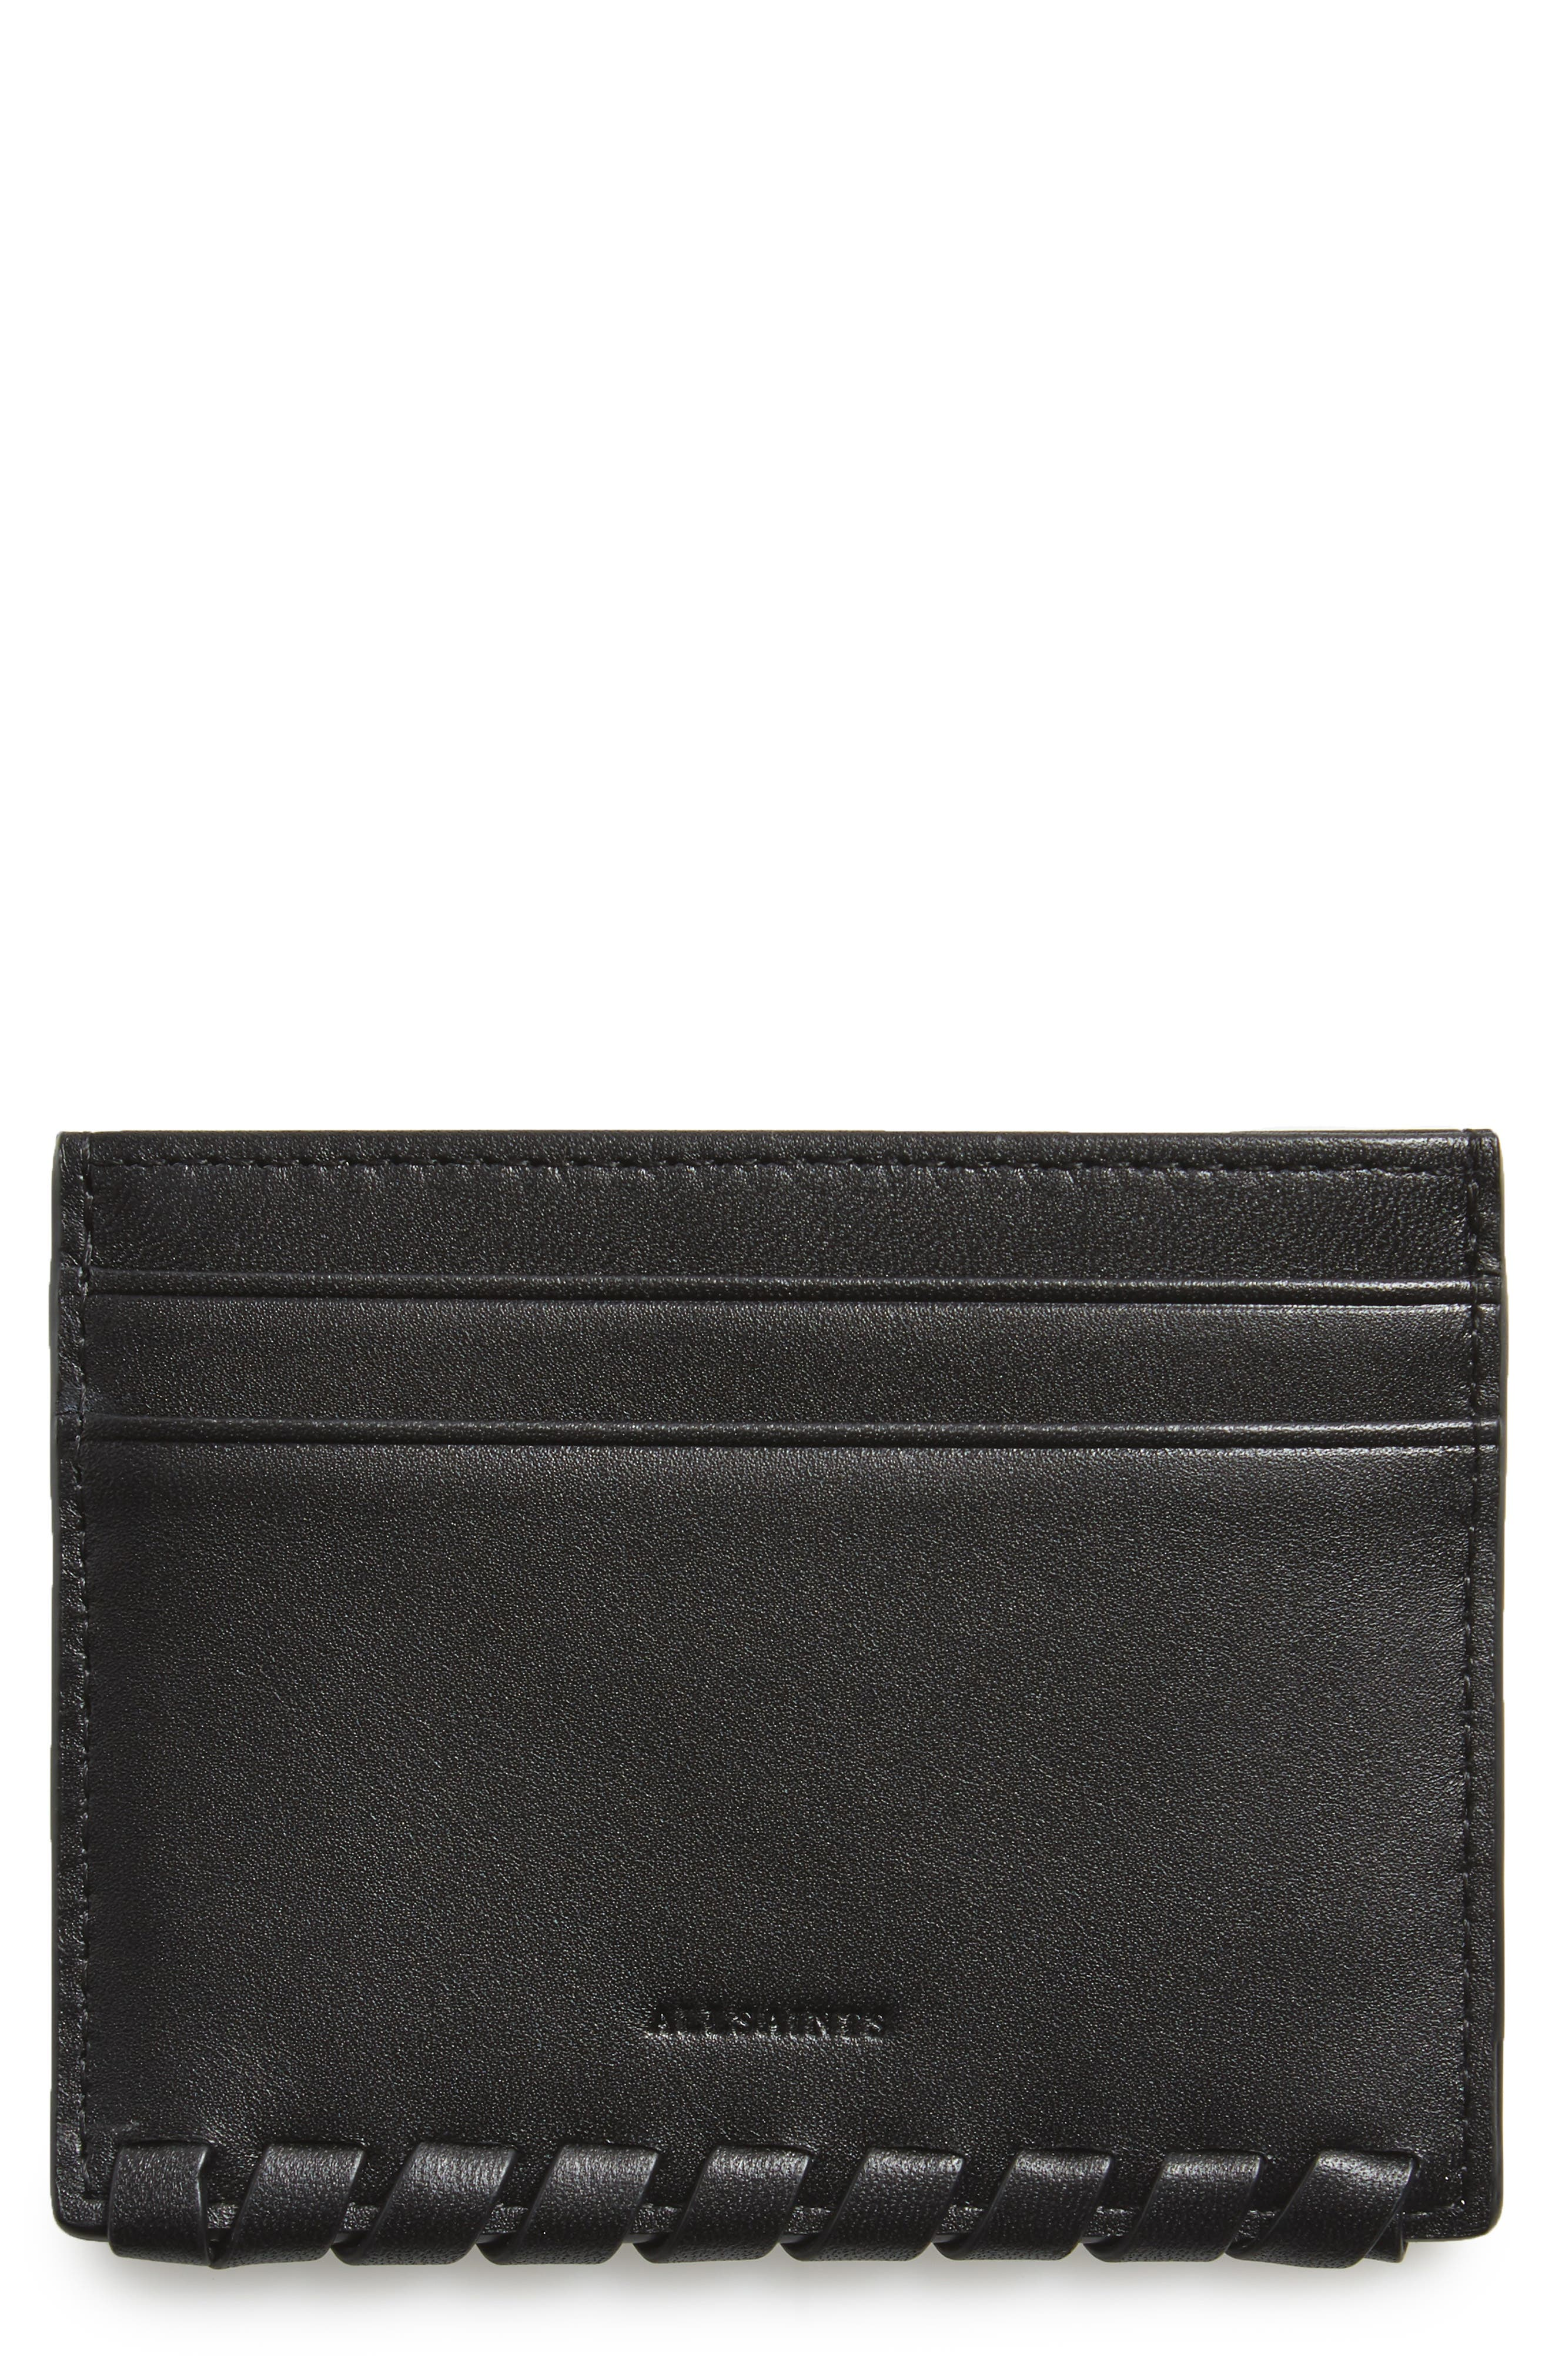 Kita Pebbled Leather Card Case,                         Main,                         color, 001